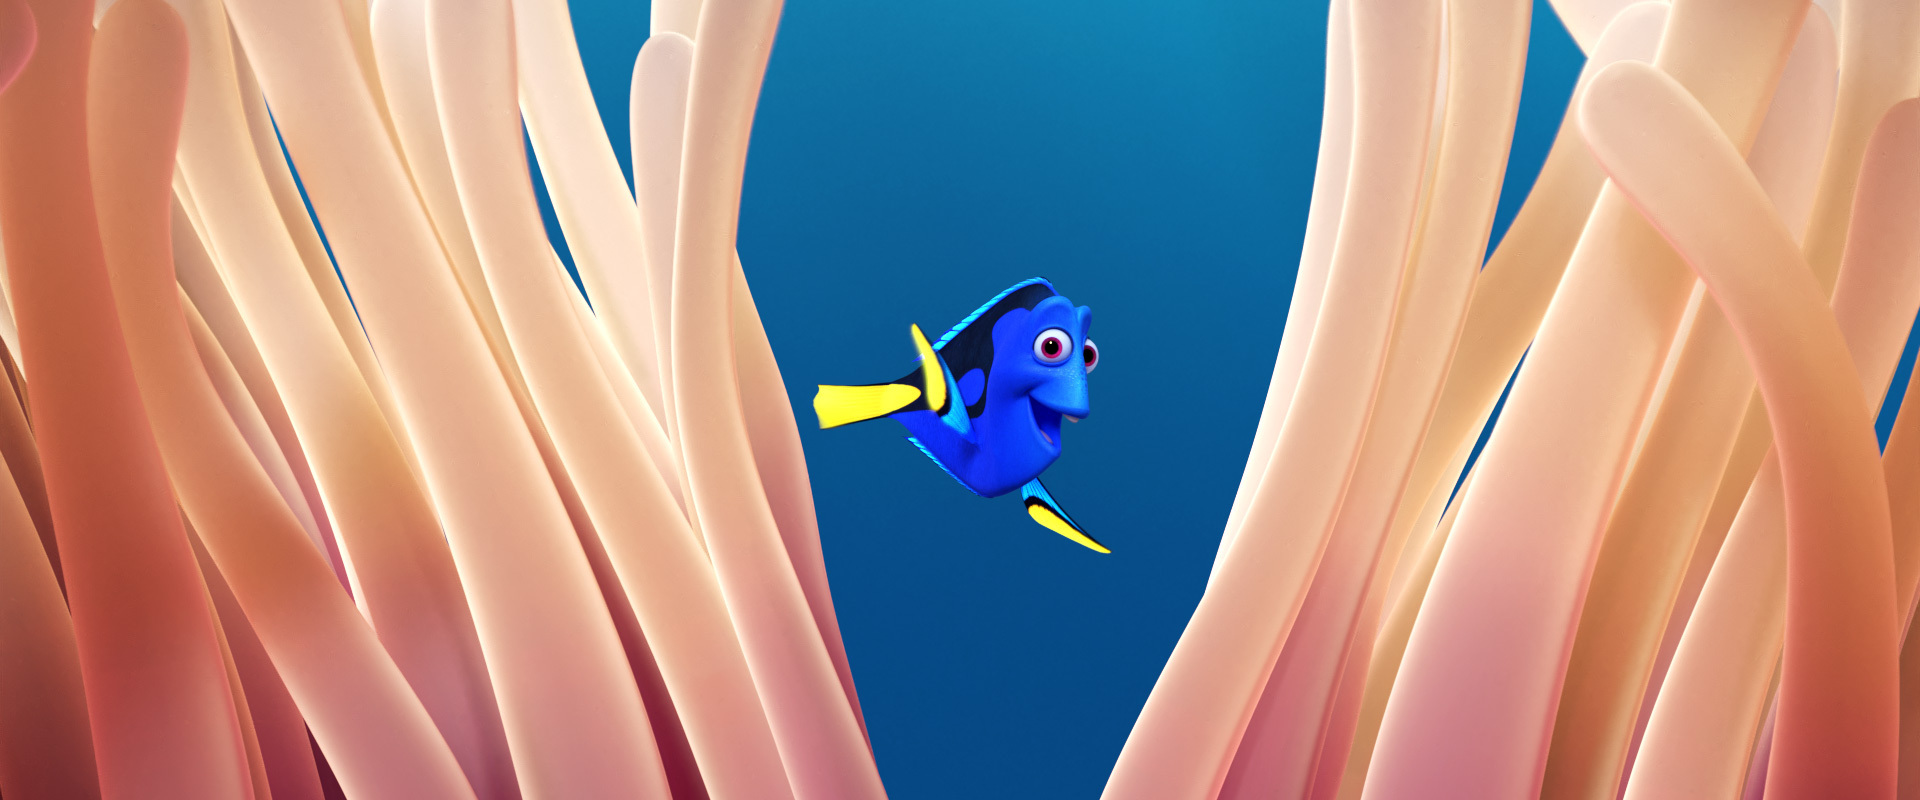 flex_tablet_findingdory_anemone_aaf61780